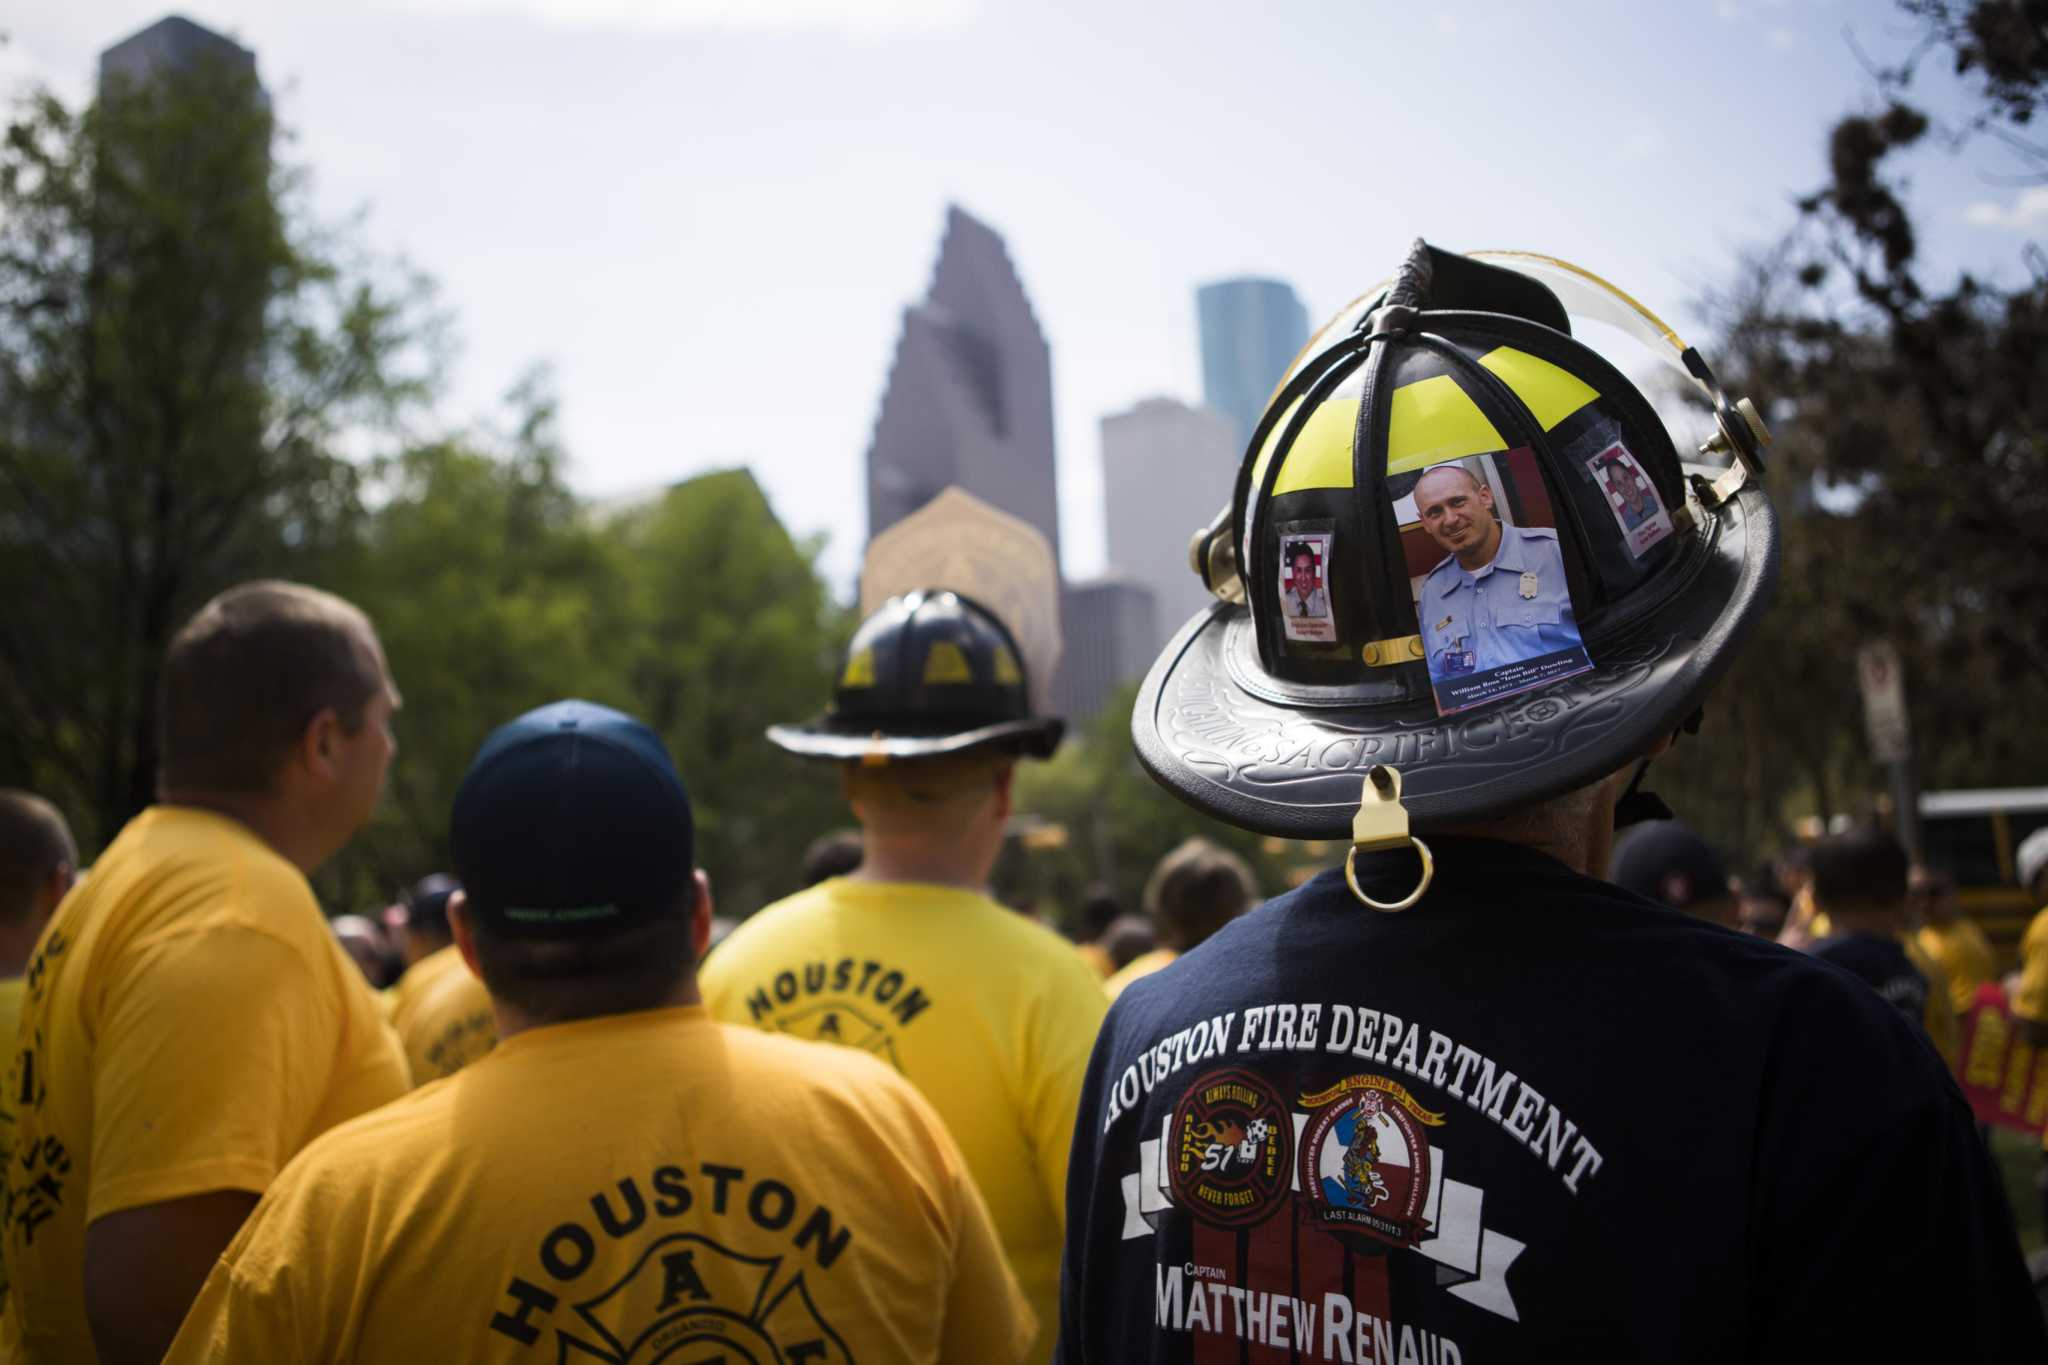 Turner right to move ahead with HFD layoffs [Editorial]